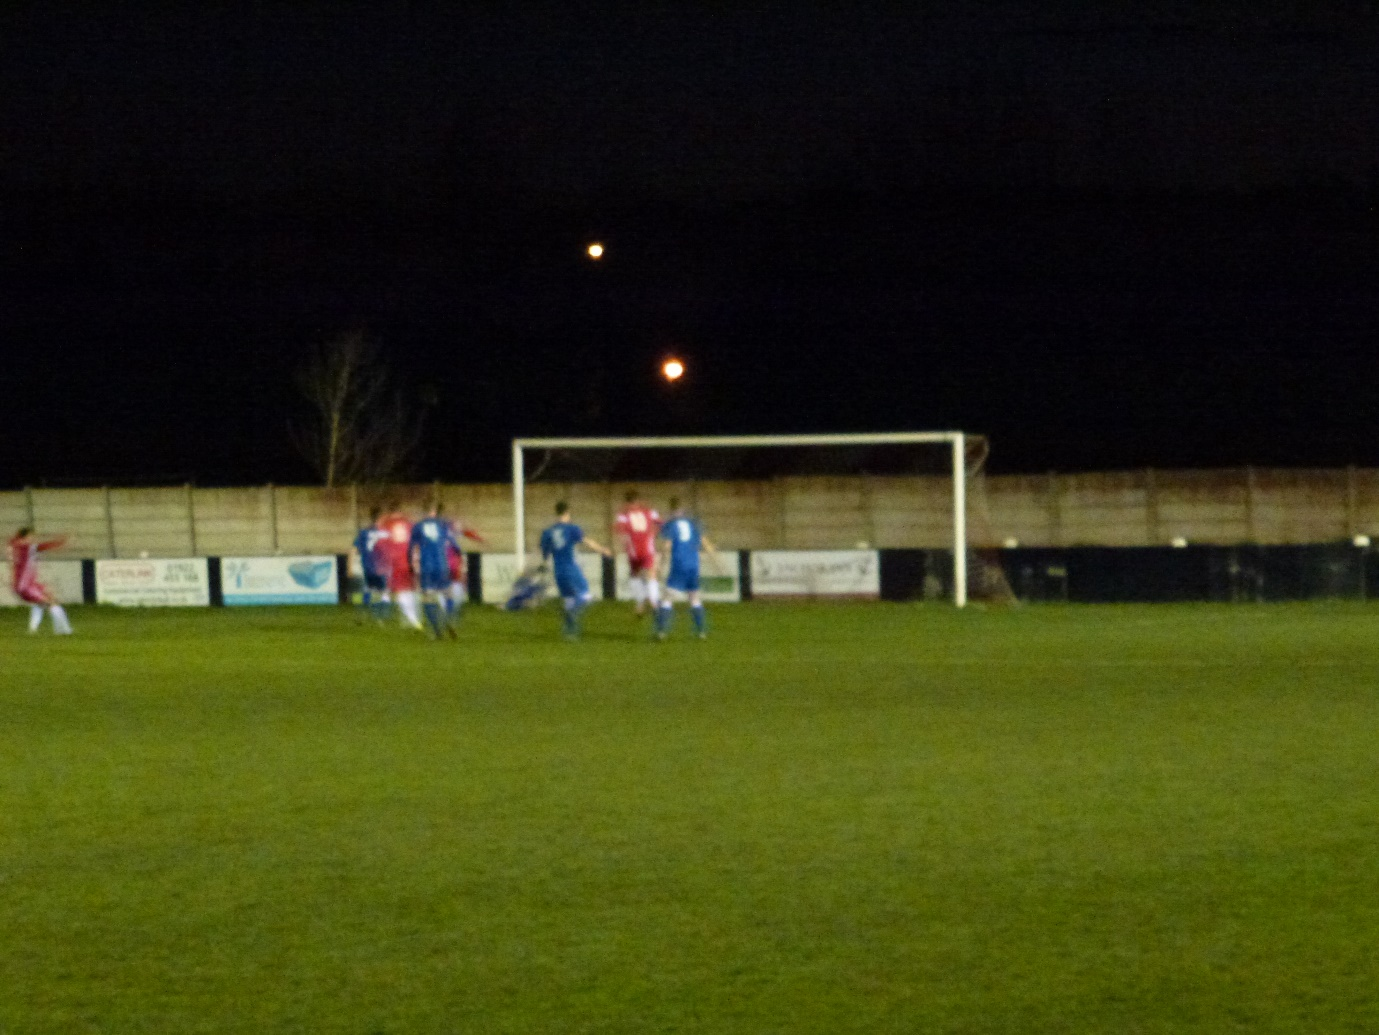 The equalising goal in the second half, where the character of play was different